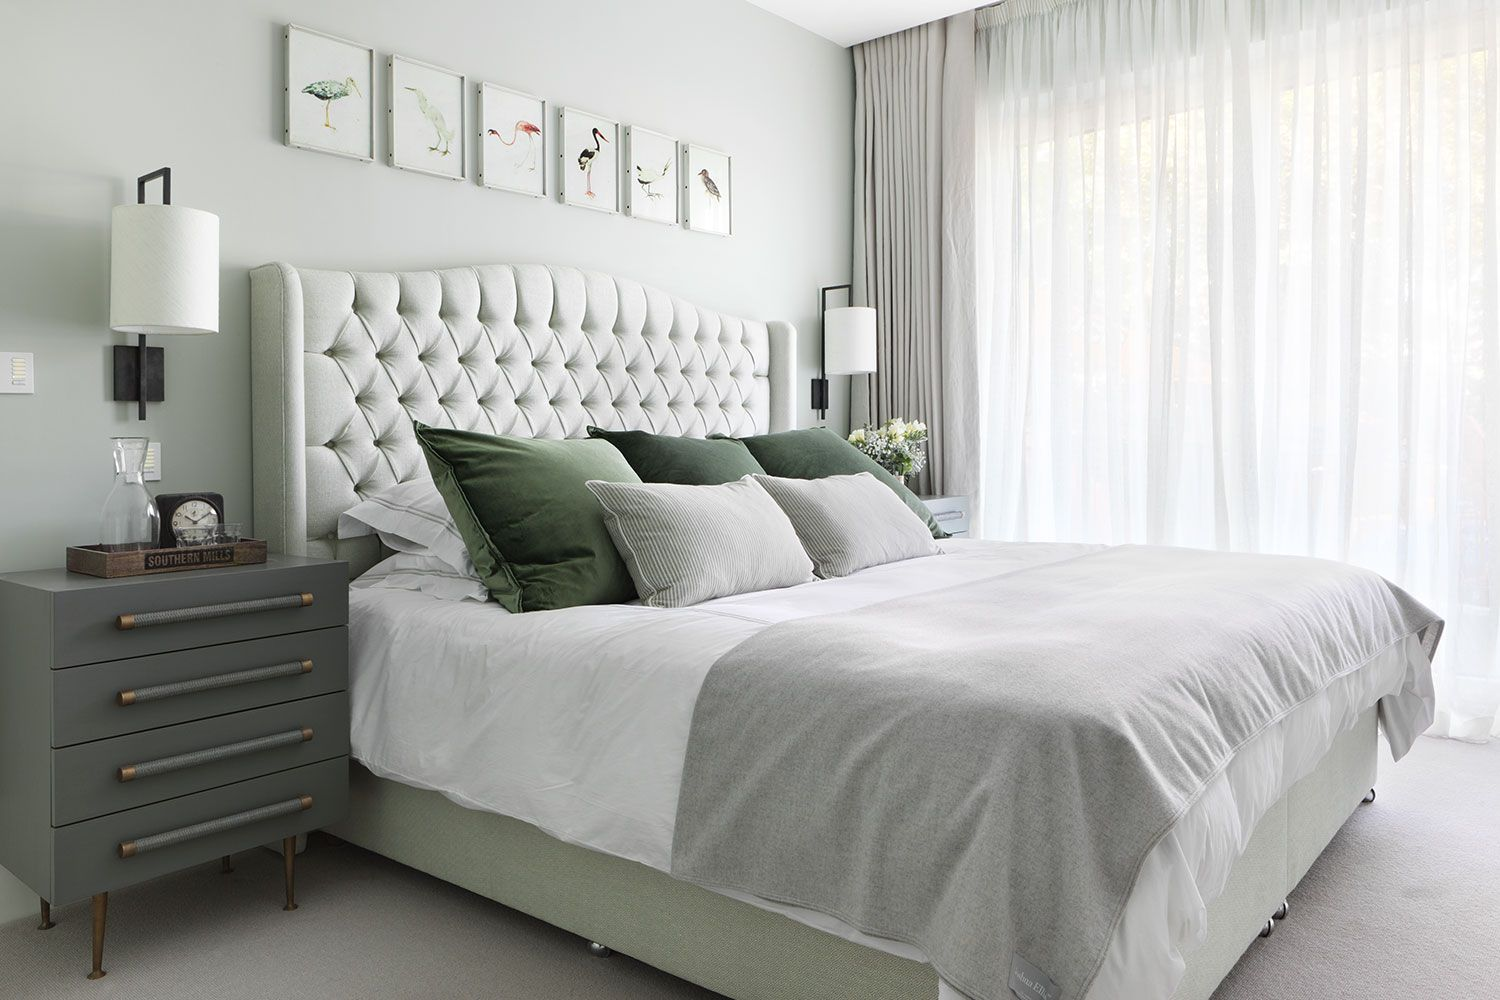 9 Green Bedroom Design Ideas for a Fresh Upgrade